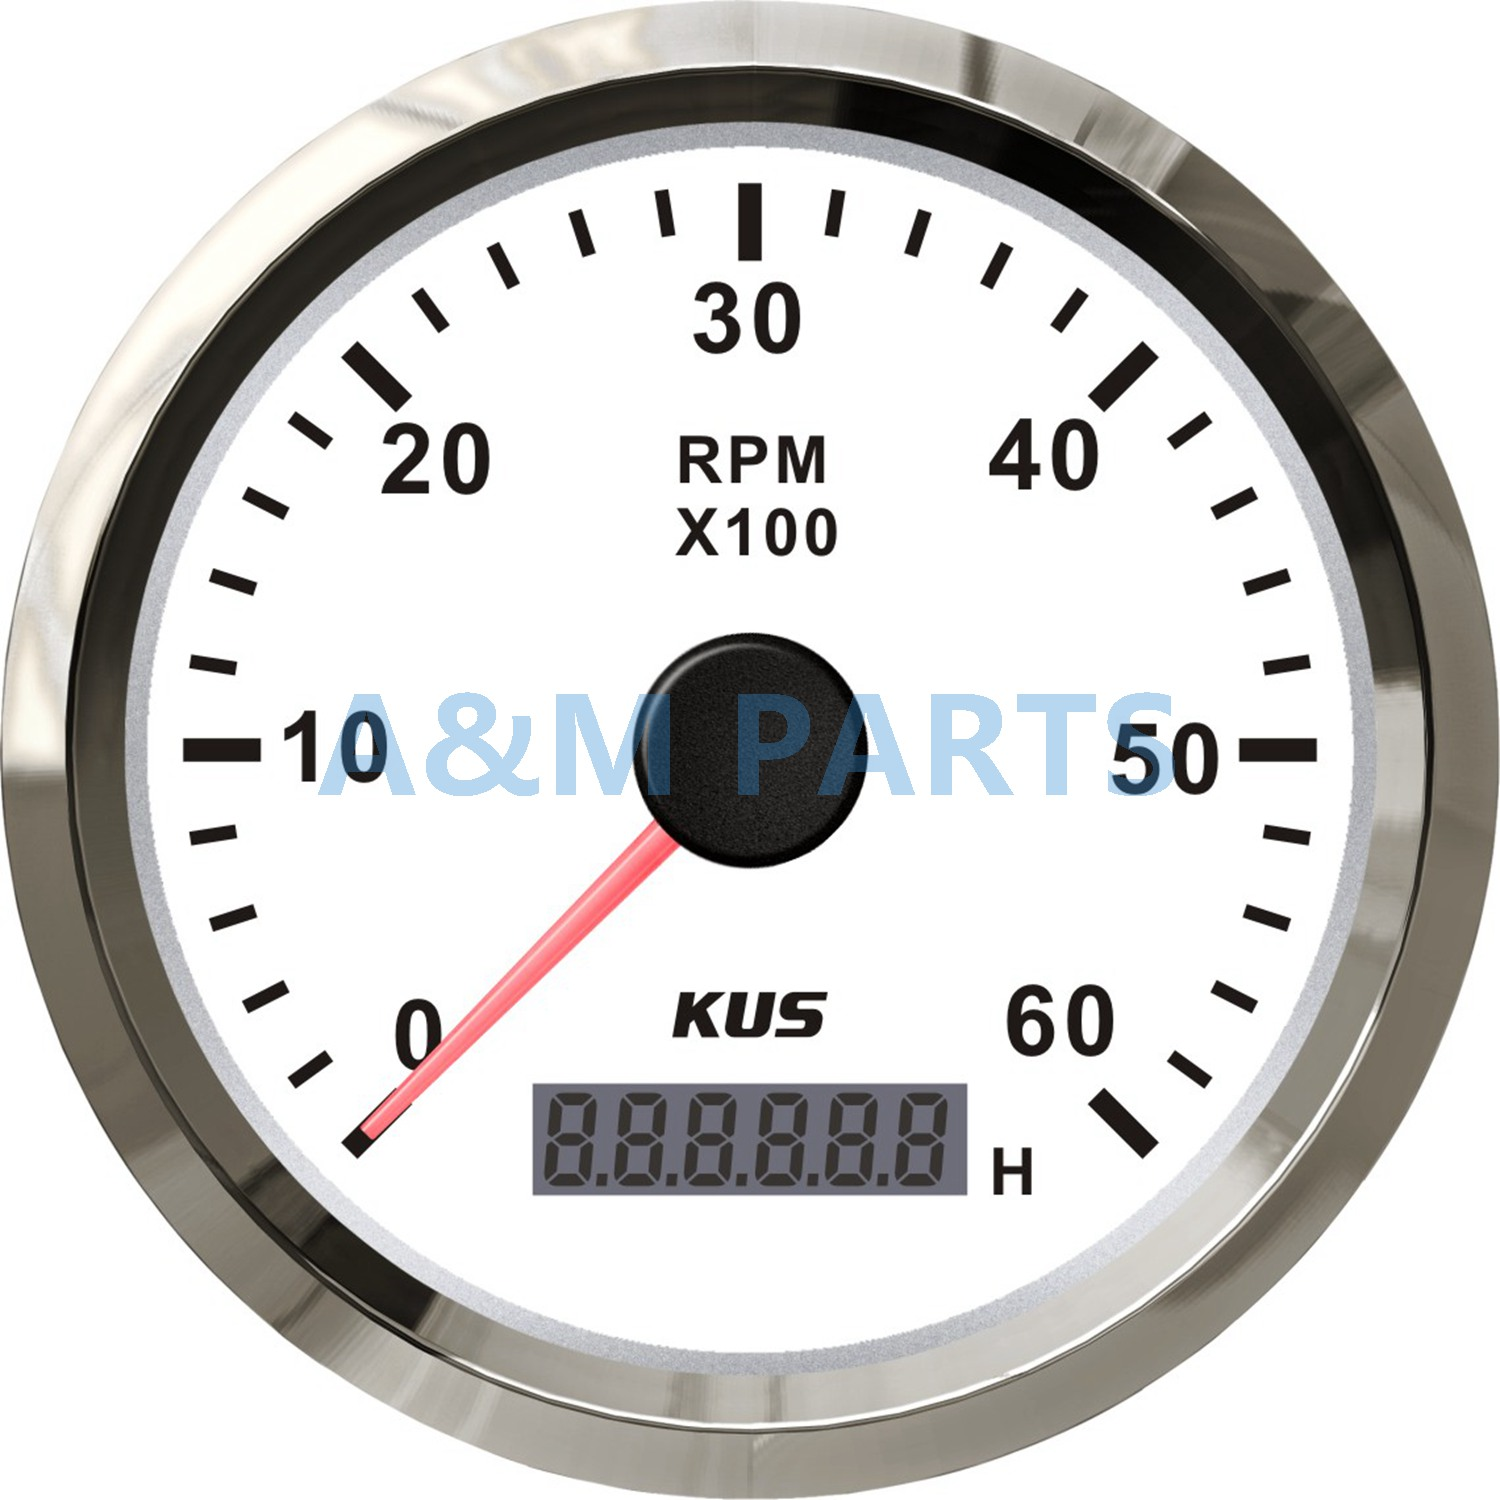 KUS Marine Outboard Tachometer With LED Hourmeter Boat Truck Car RV Waterproof RPM Meter 6000 RPM 85mm Speed Ration 1-10 kus marine car truck tachometer boat motor digital hourmeter 12 24v 0 4000 rpm